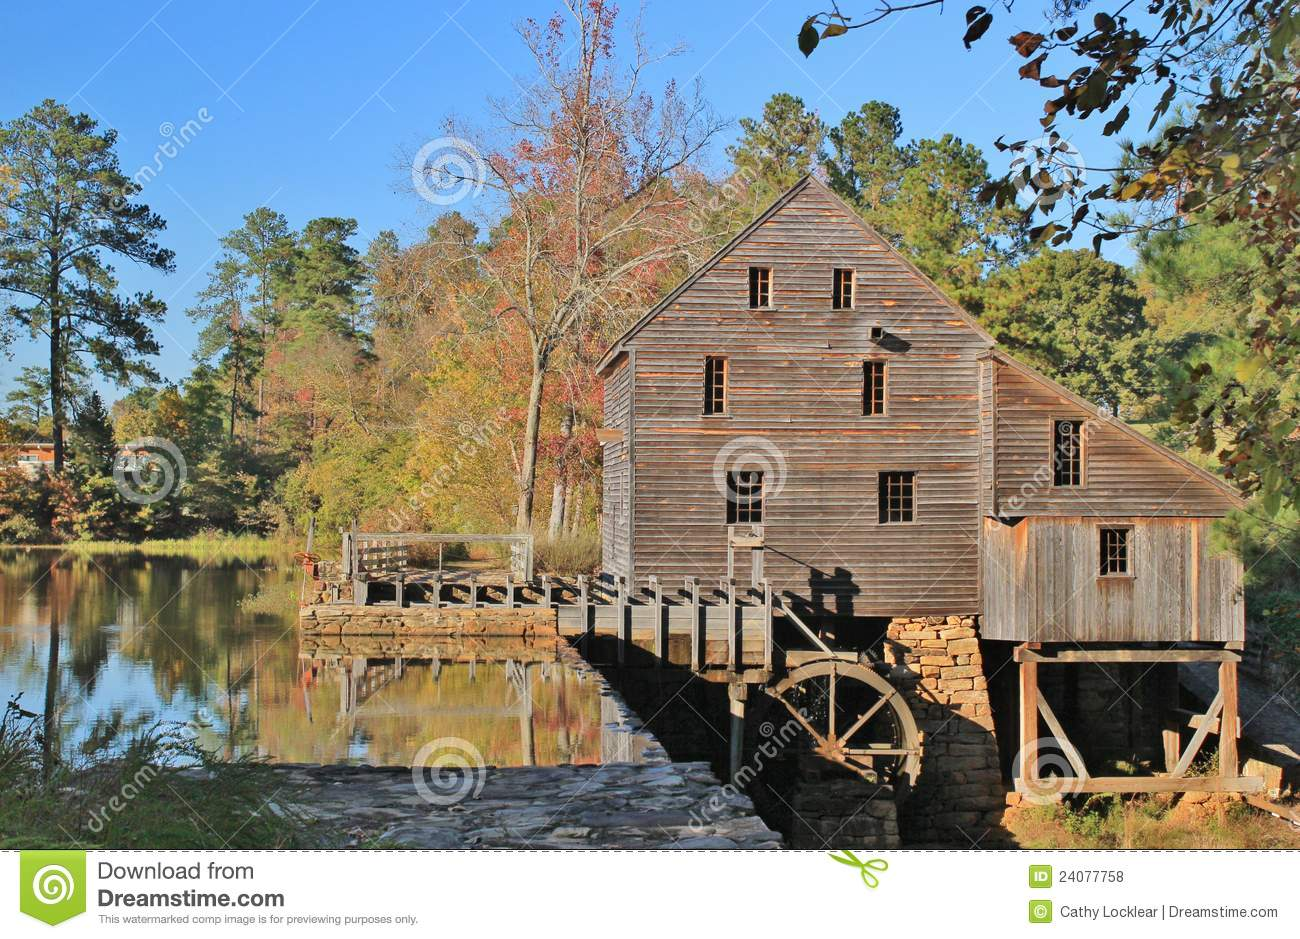 Grist Mill #1